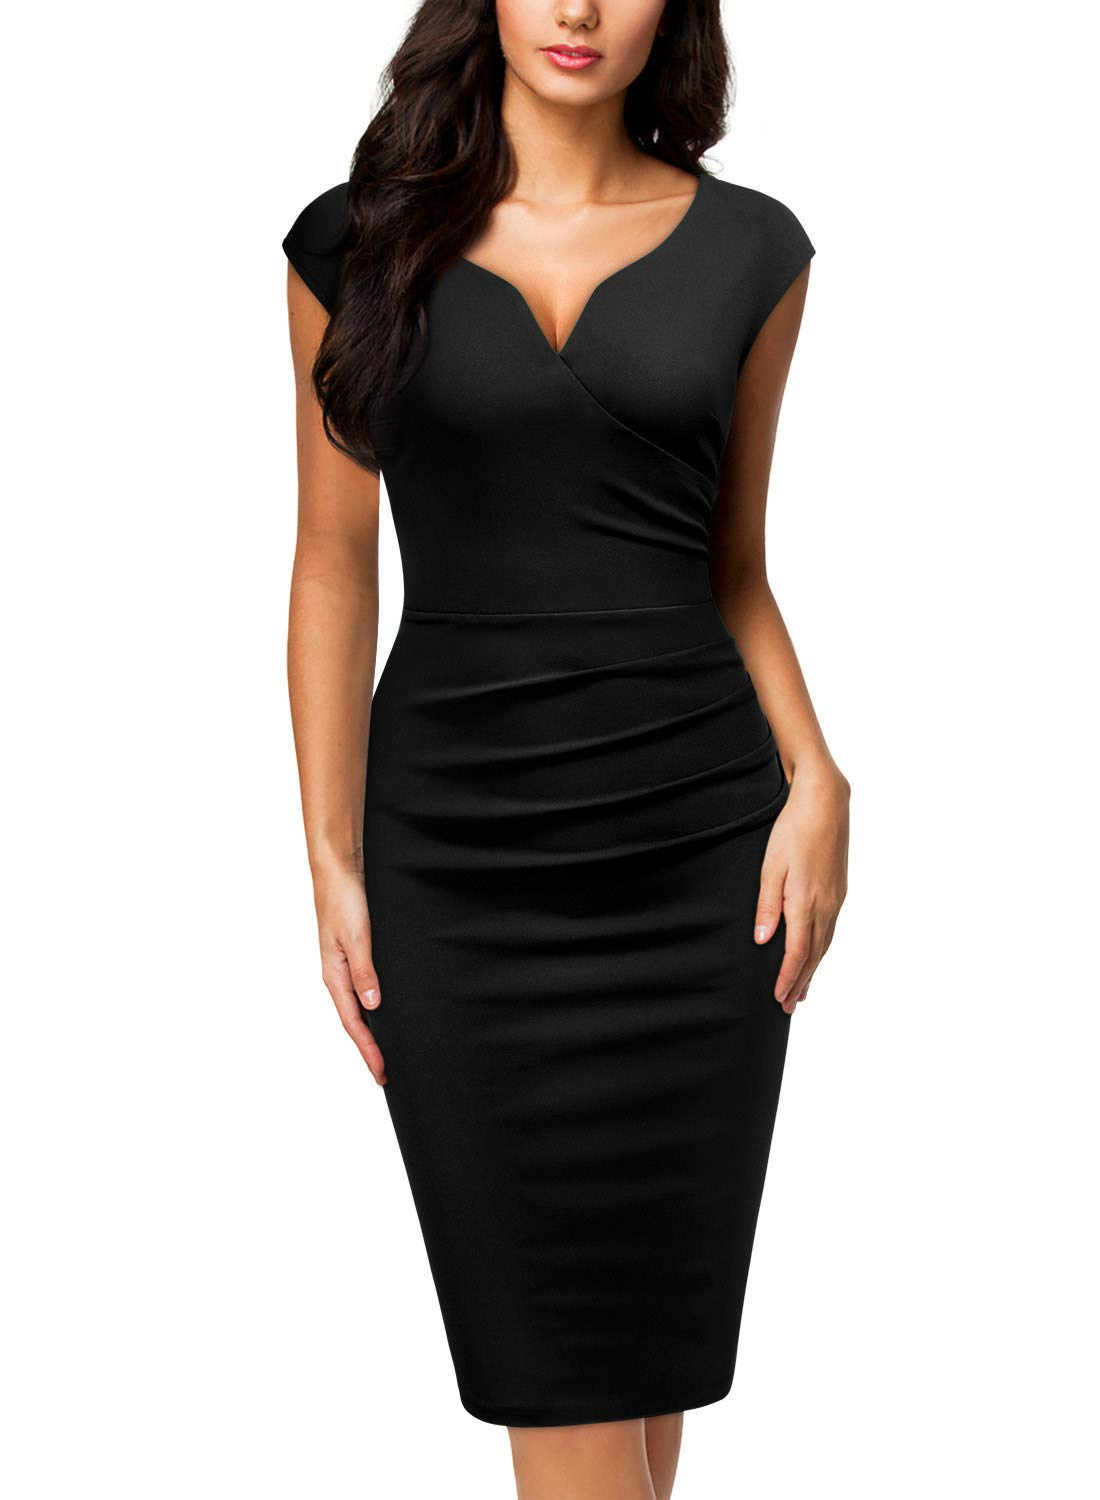 Miusol Women's Vintage Slim Style Sleeveless Business Pencil Dress